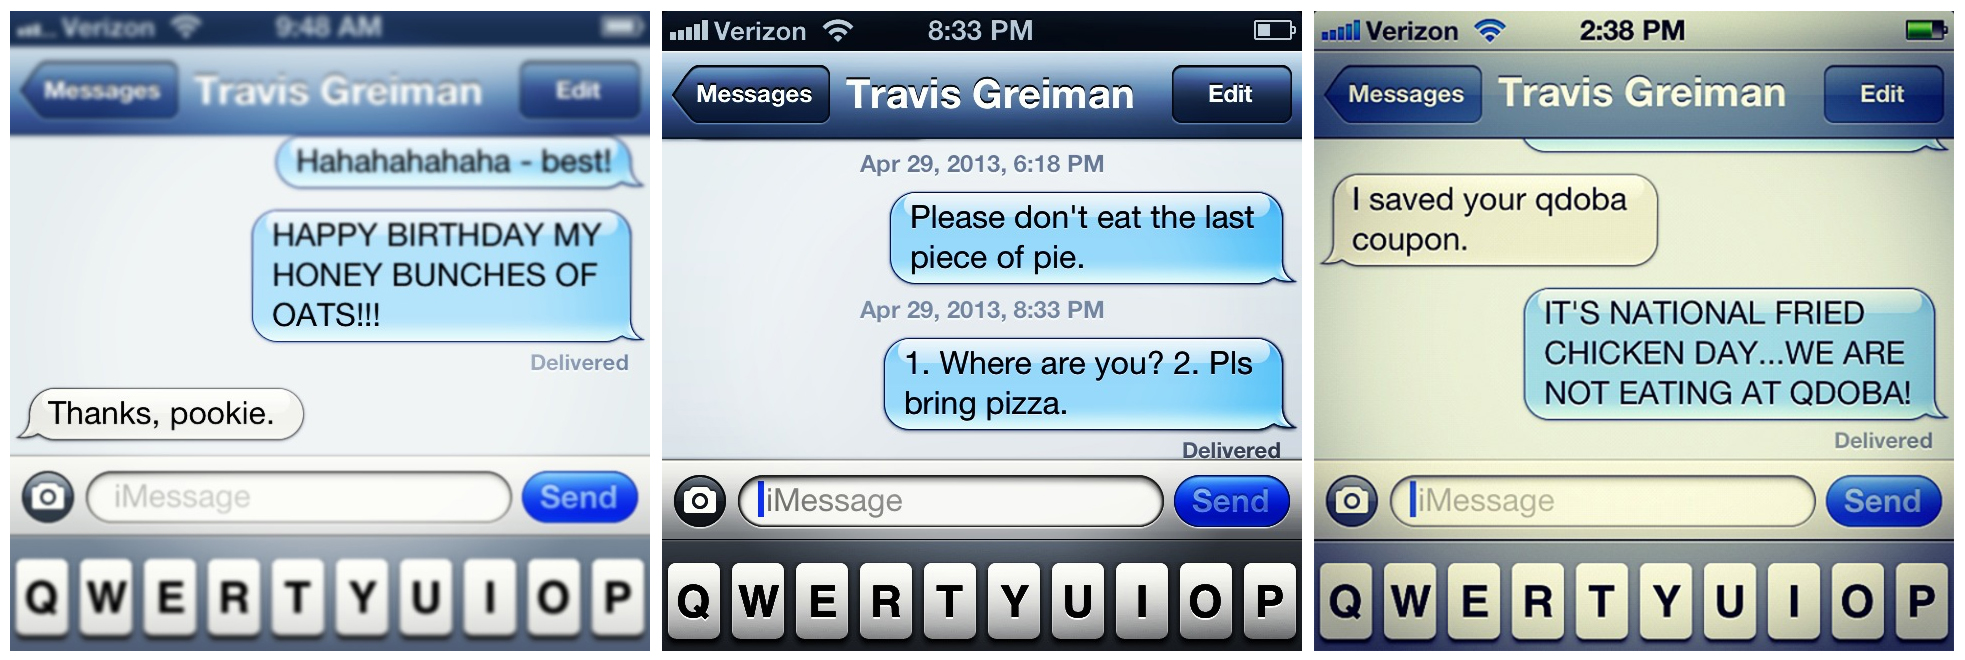 I had no idea how much I texted about food. Or how much I yelled about it.